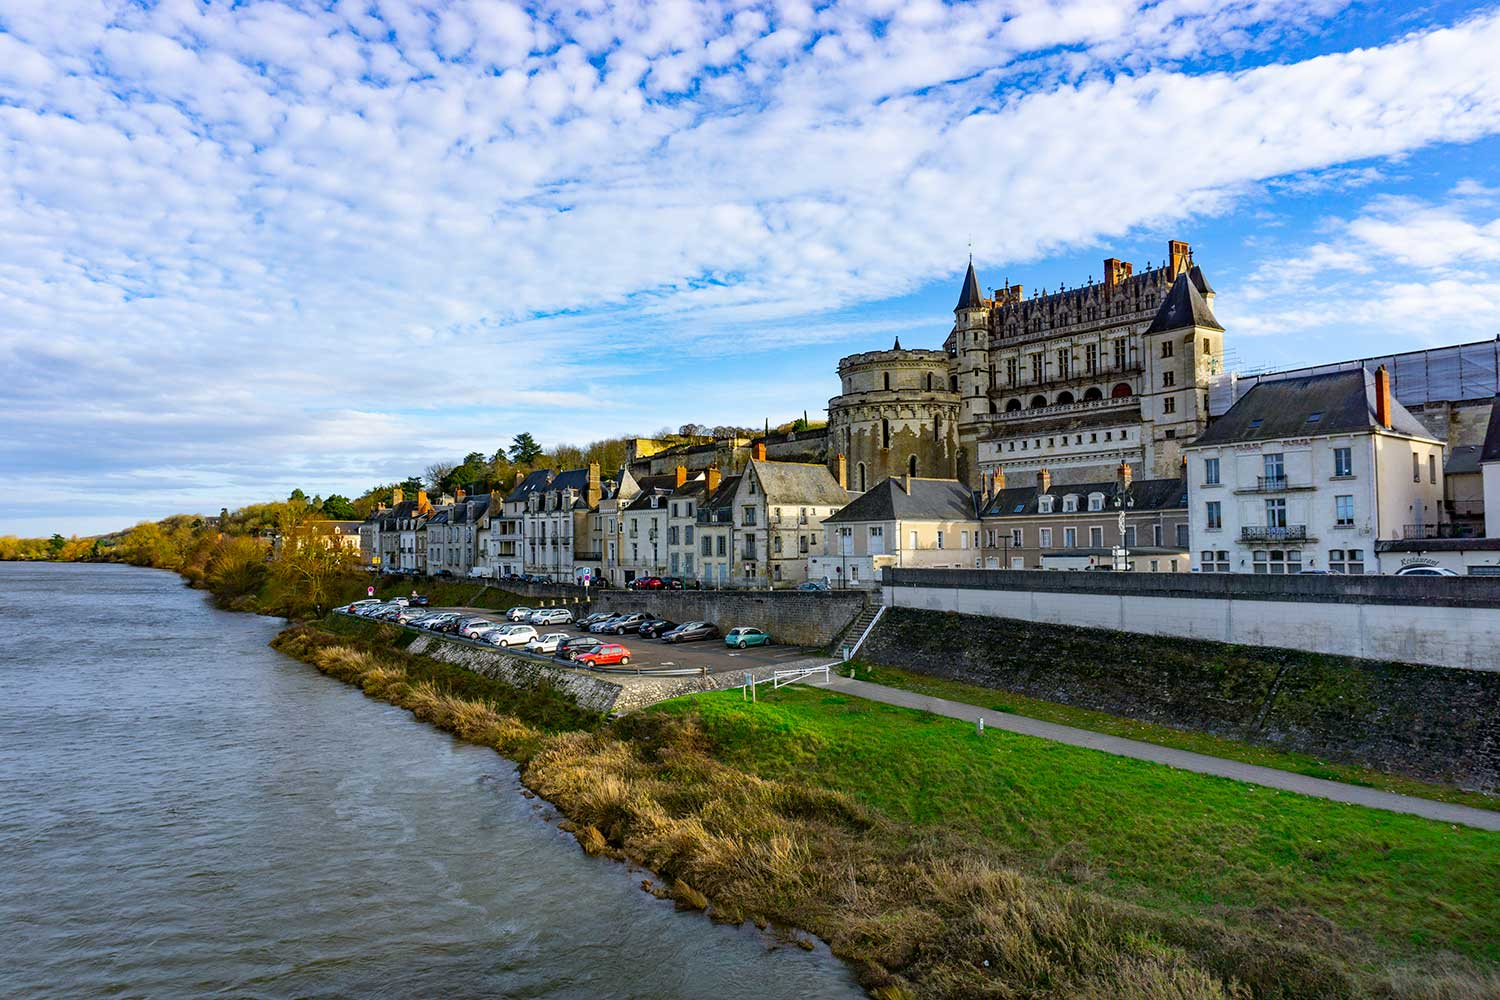 Amboise Castle next to a river in Aboise, France.